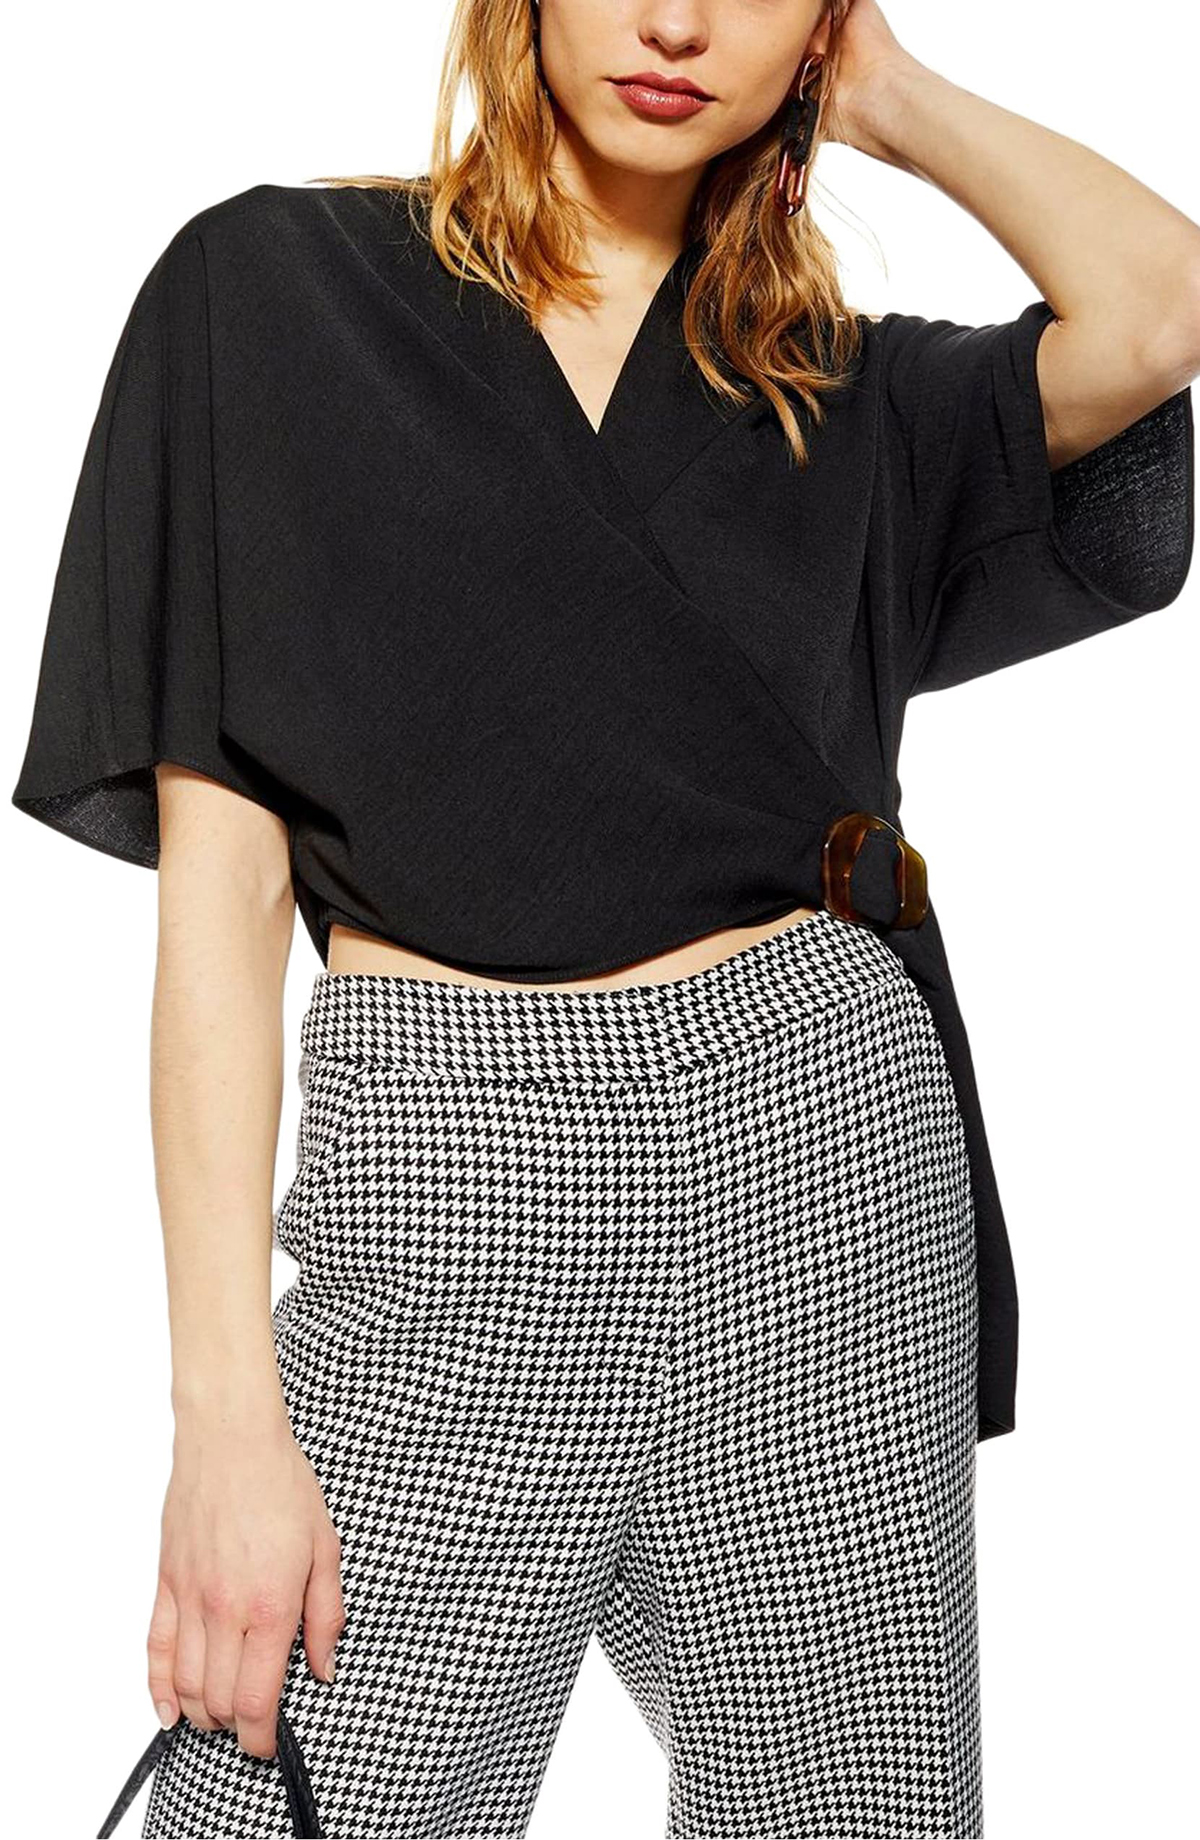 Add a Touch of Glam to Your Everyday Style With This 50%-Off Wrap Top